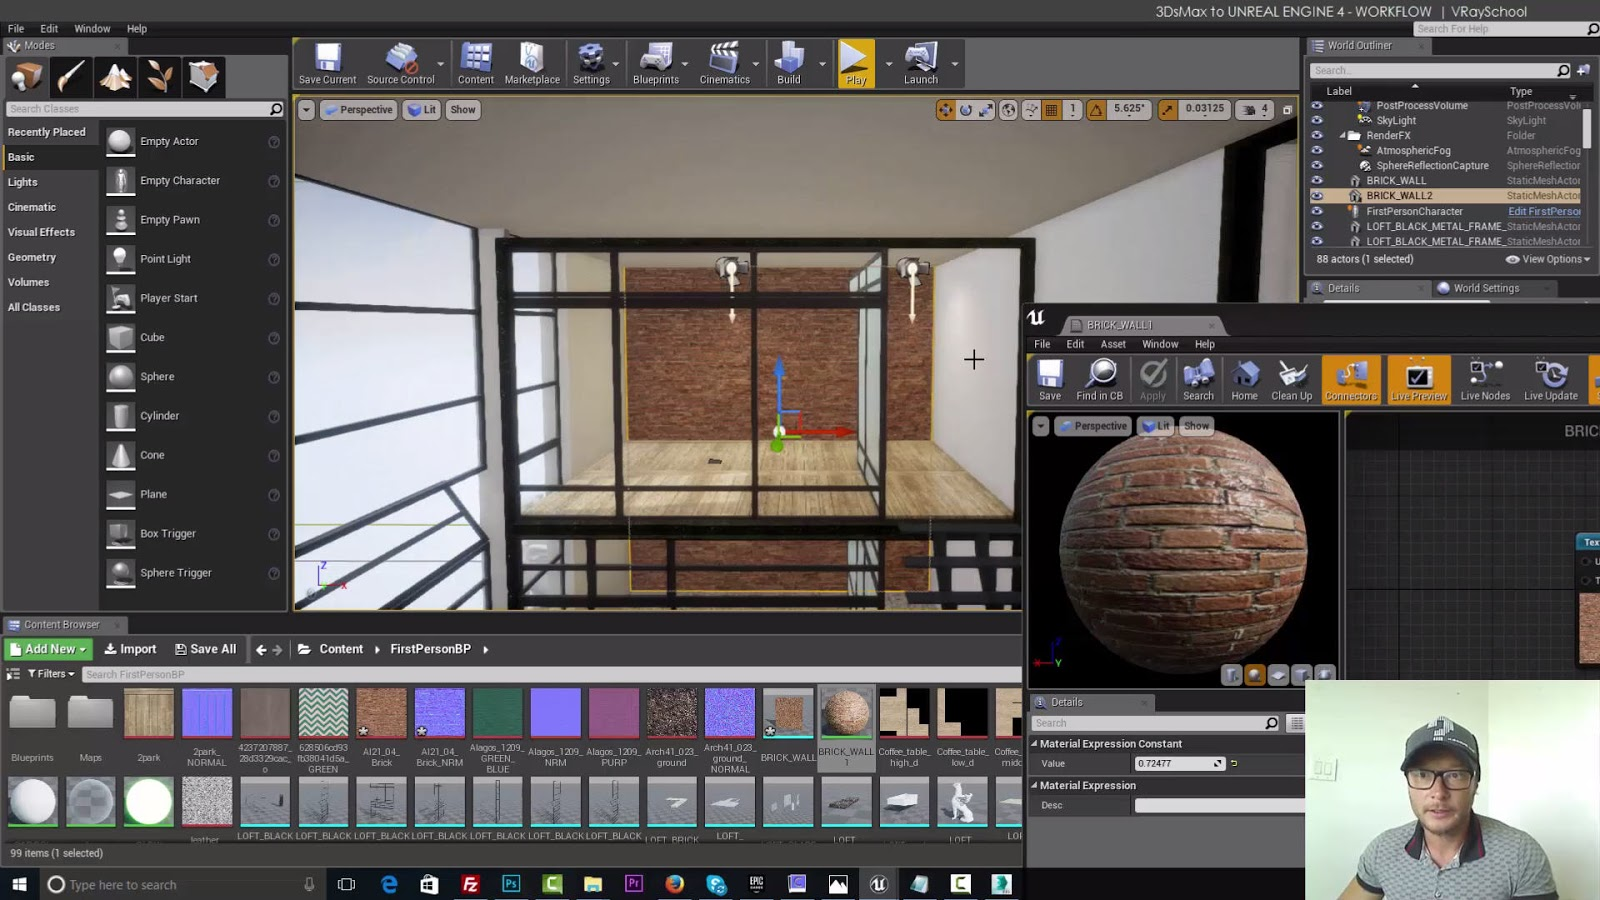 how to get unreal engine 4